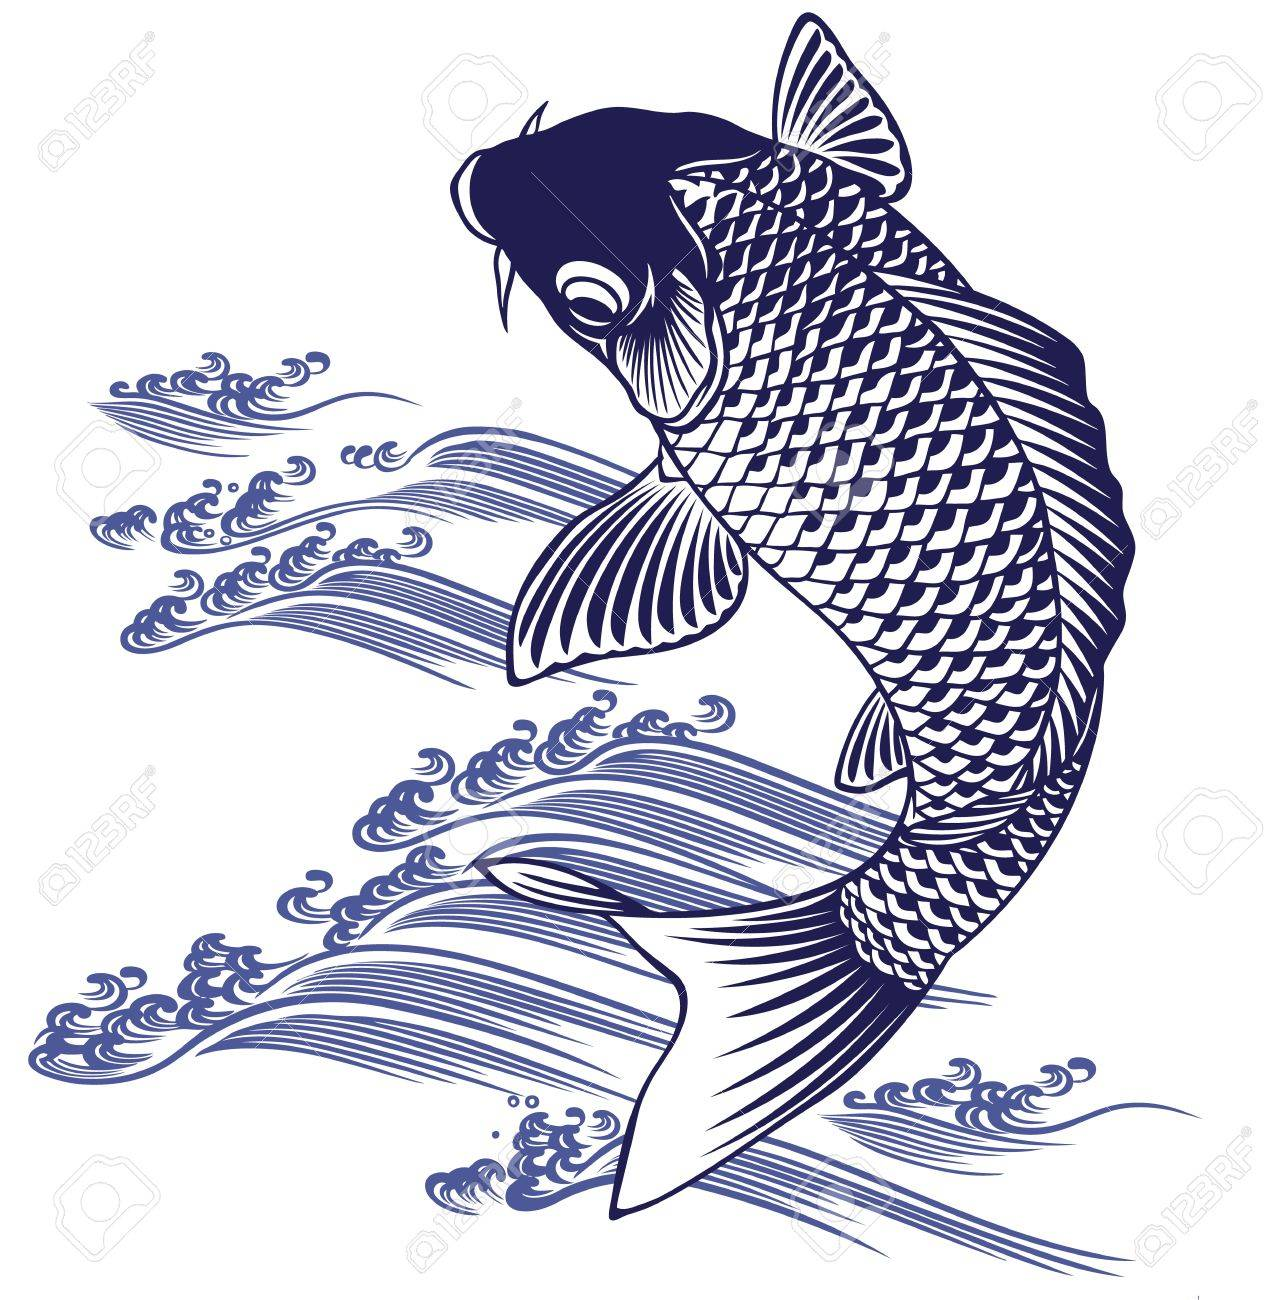 Japanese Carp Royalty Free Cliparts, Vectors, And Stock ...